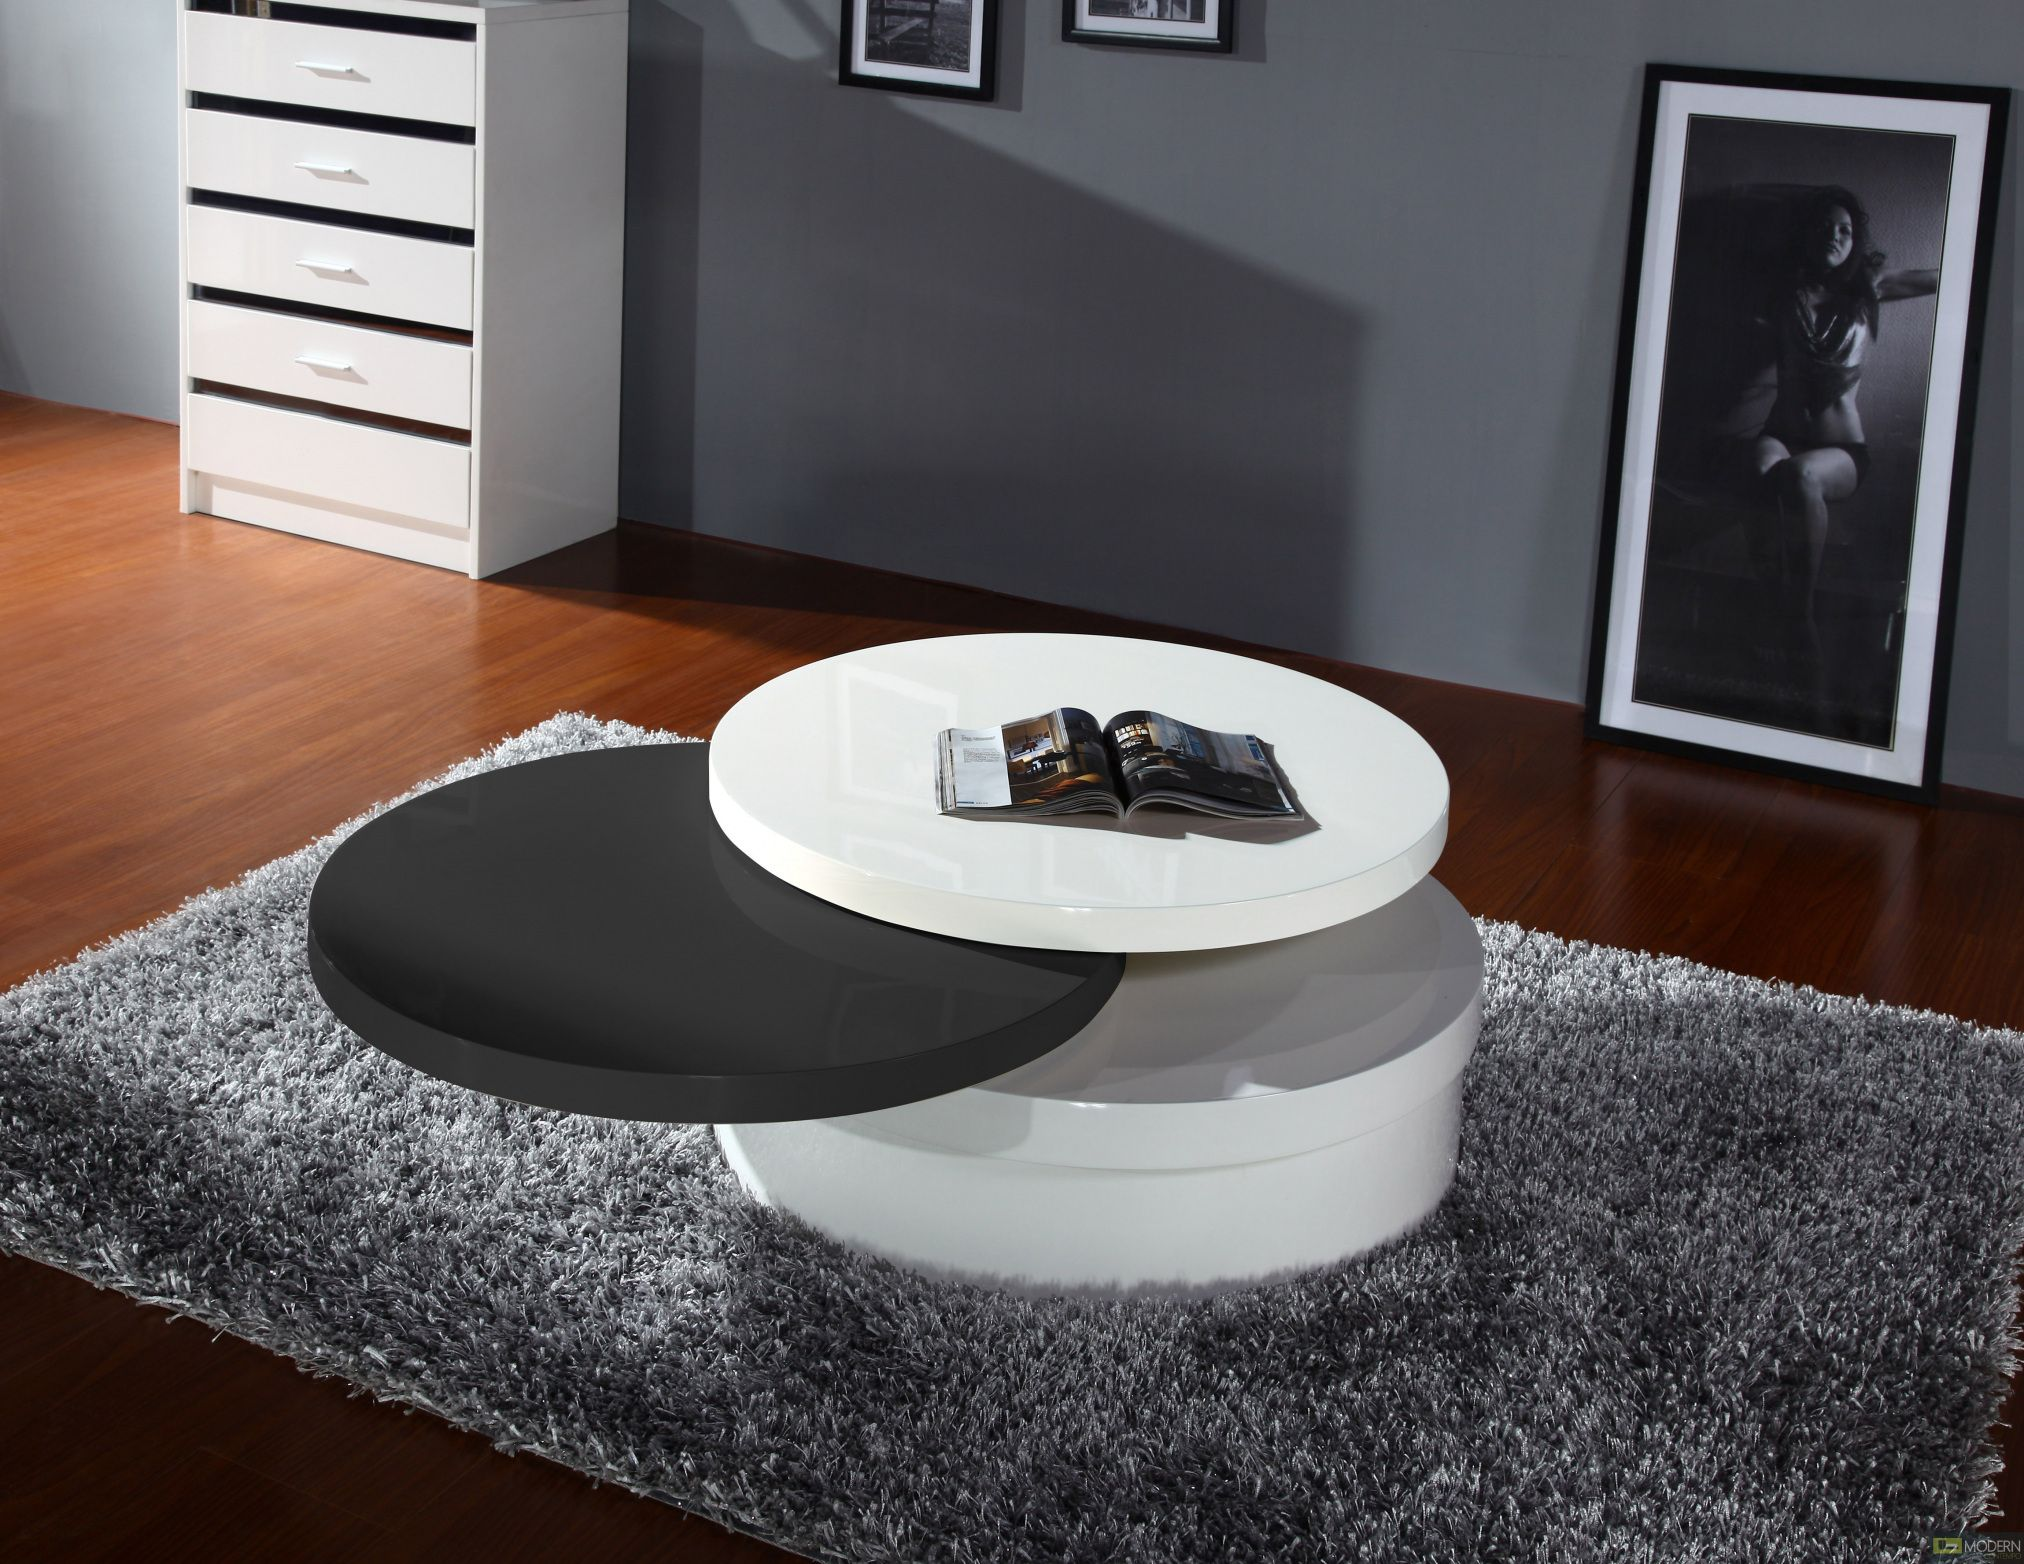 Round Swivel Coffee Table Large Home Office Furniture Check - Round rotating coffee table